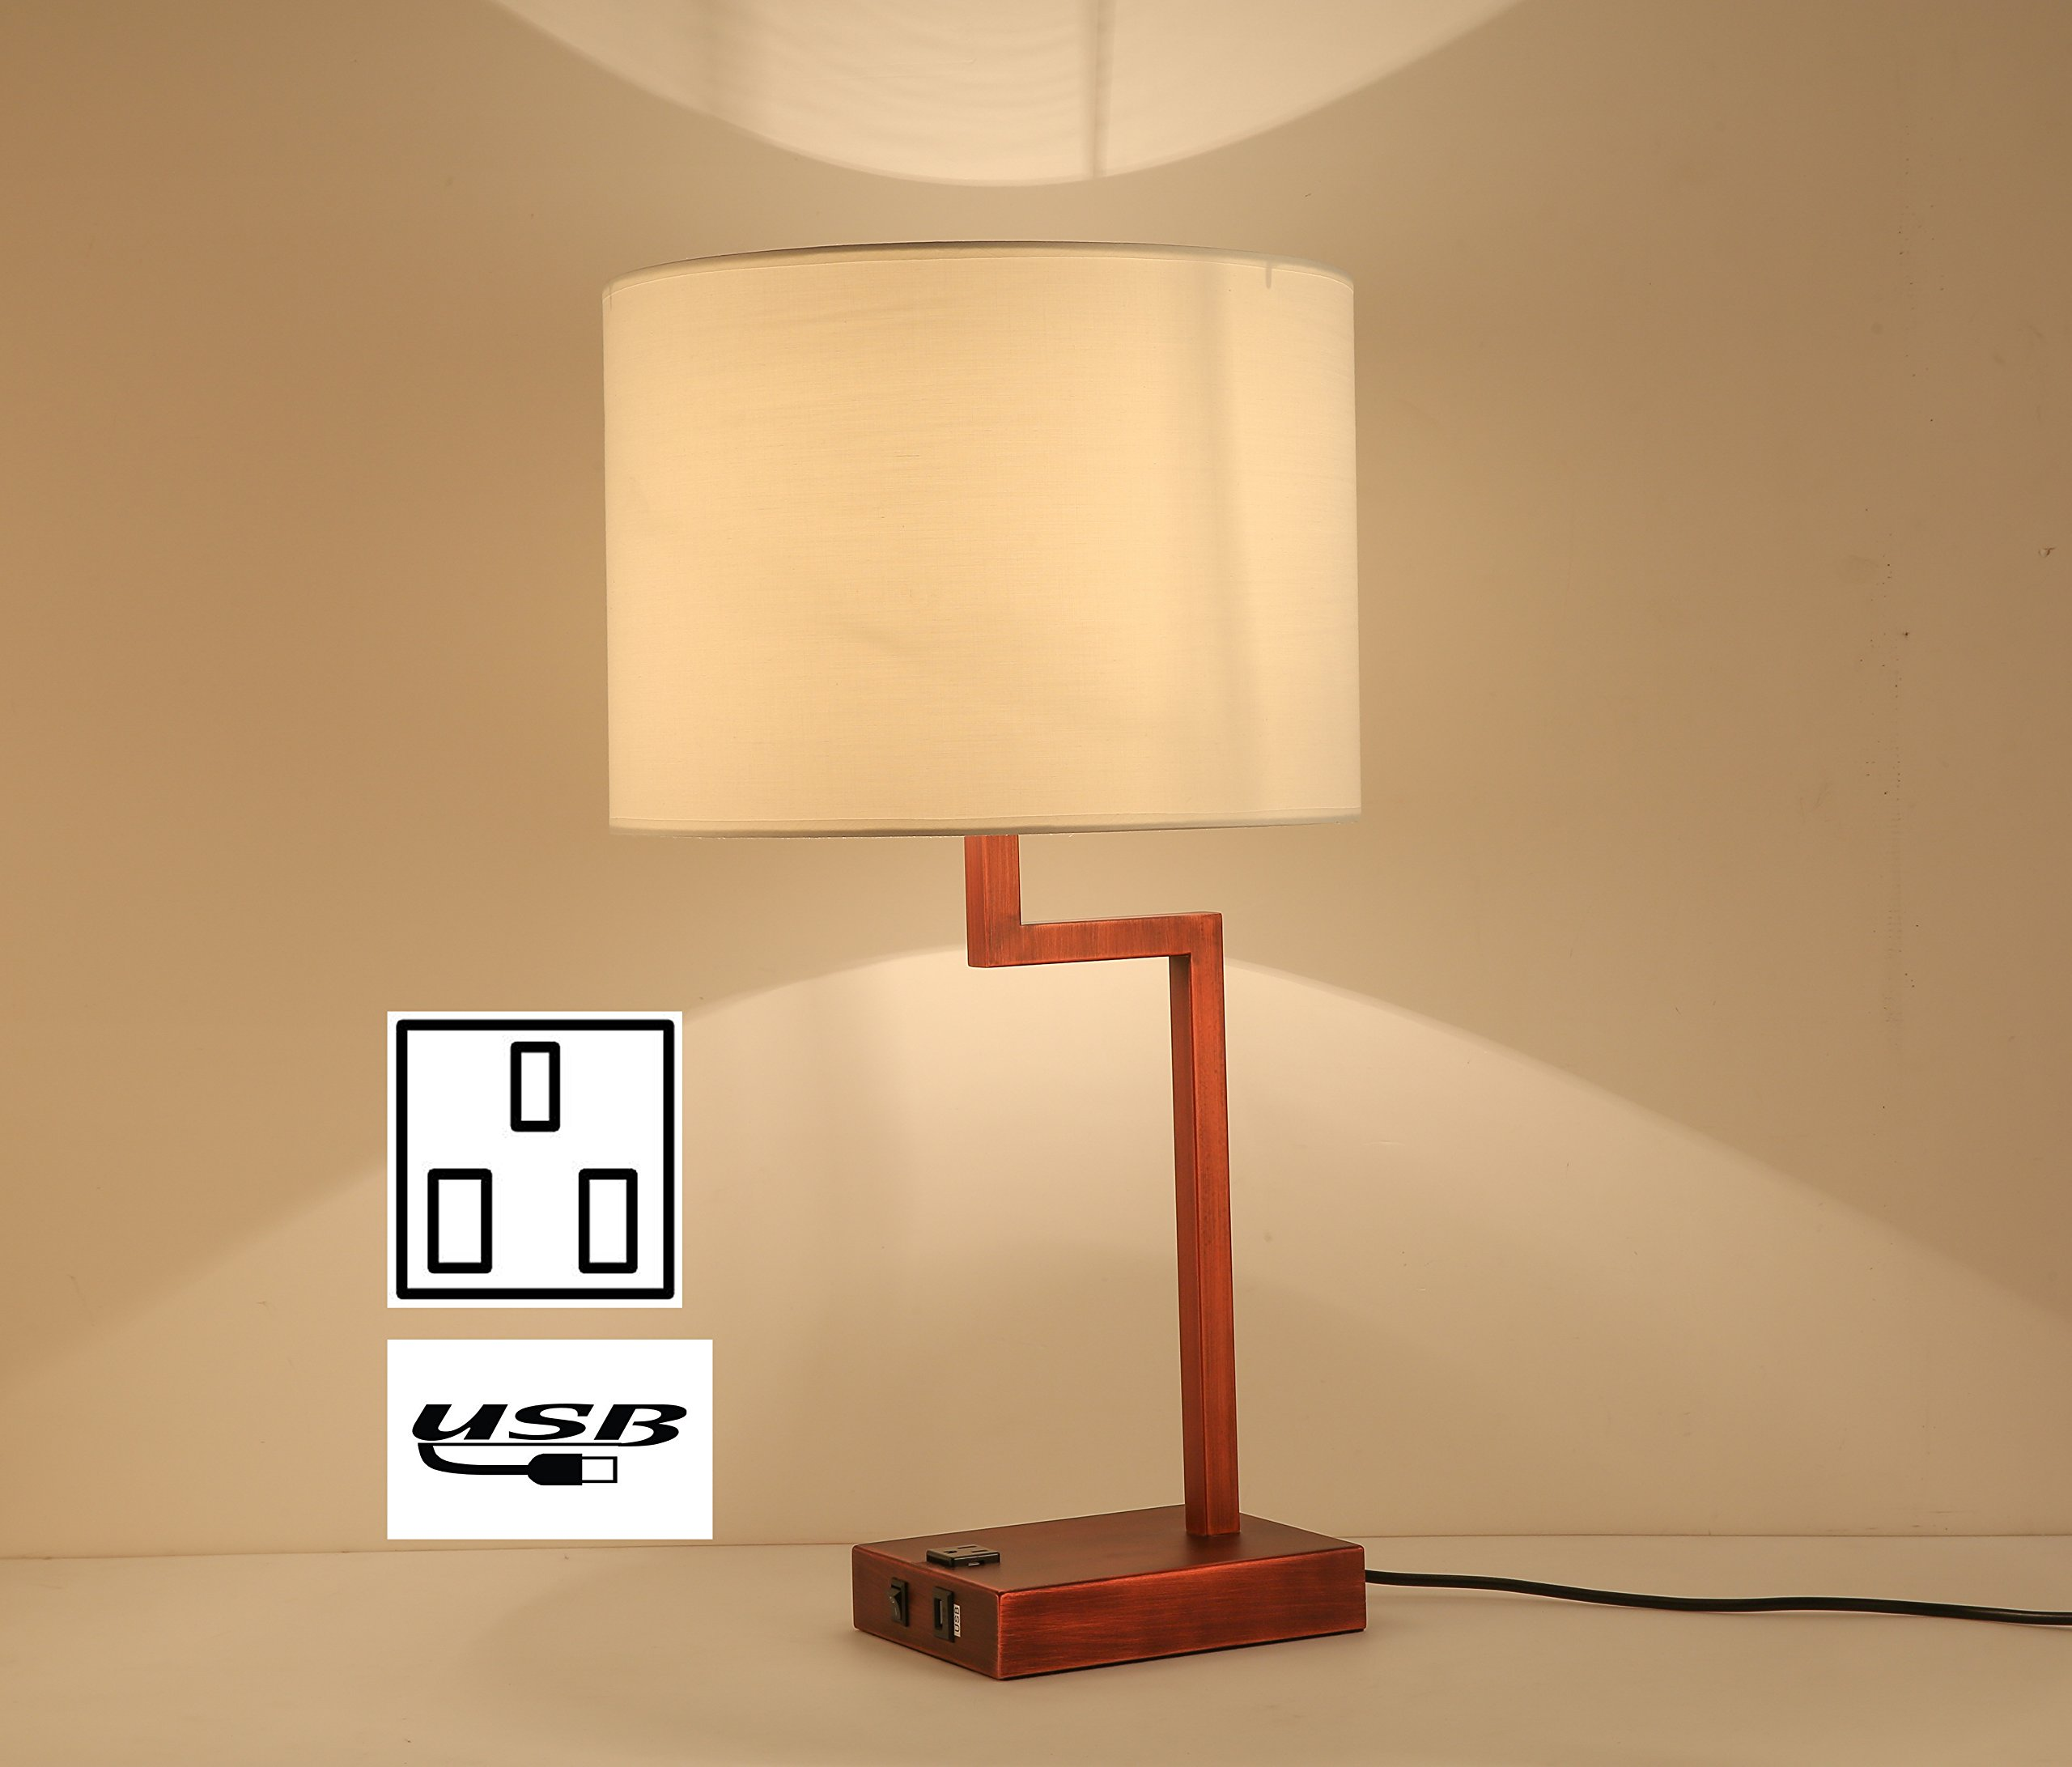 lobolovelife lobo Bronze Desk lamps with electirc outlet and table lamp with USB set of 4